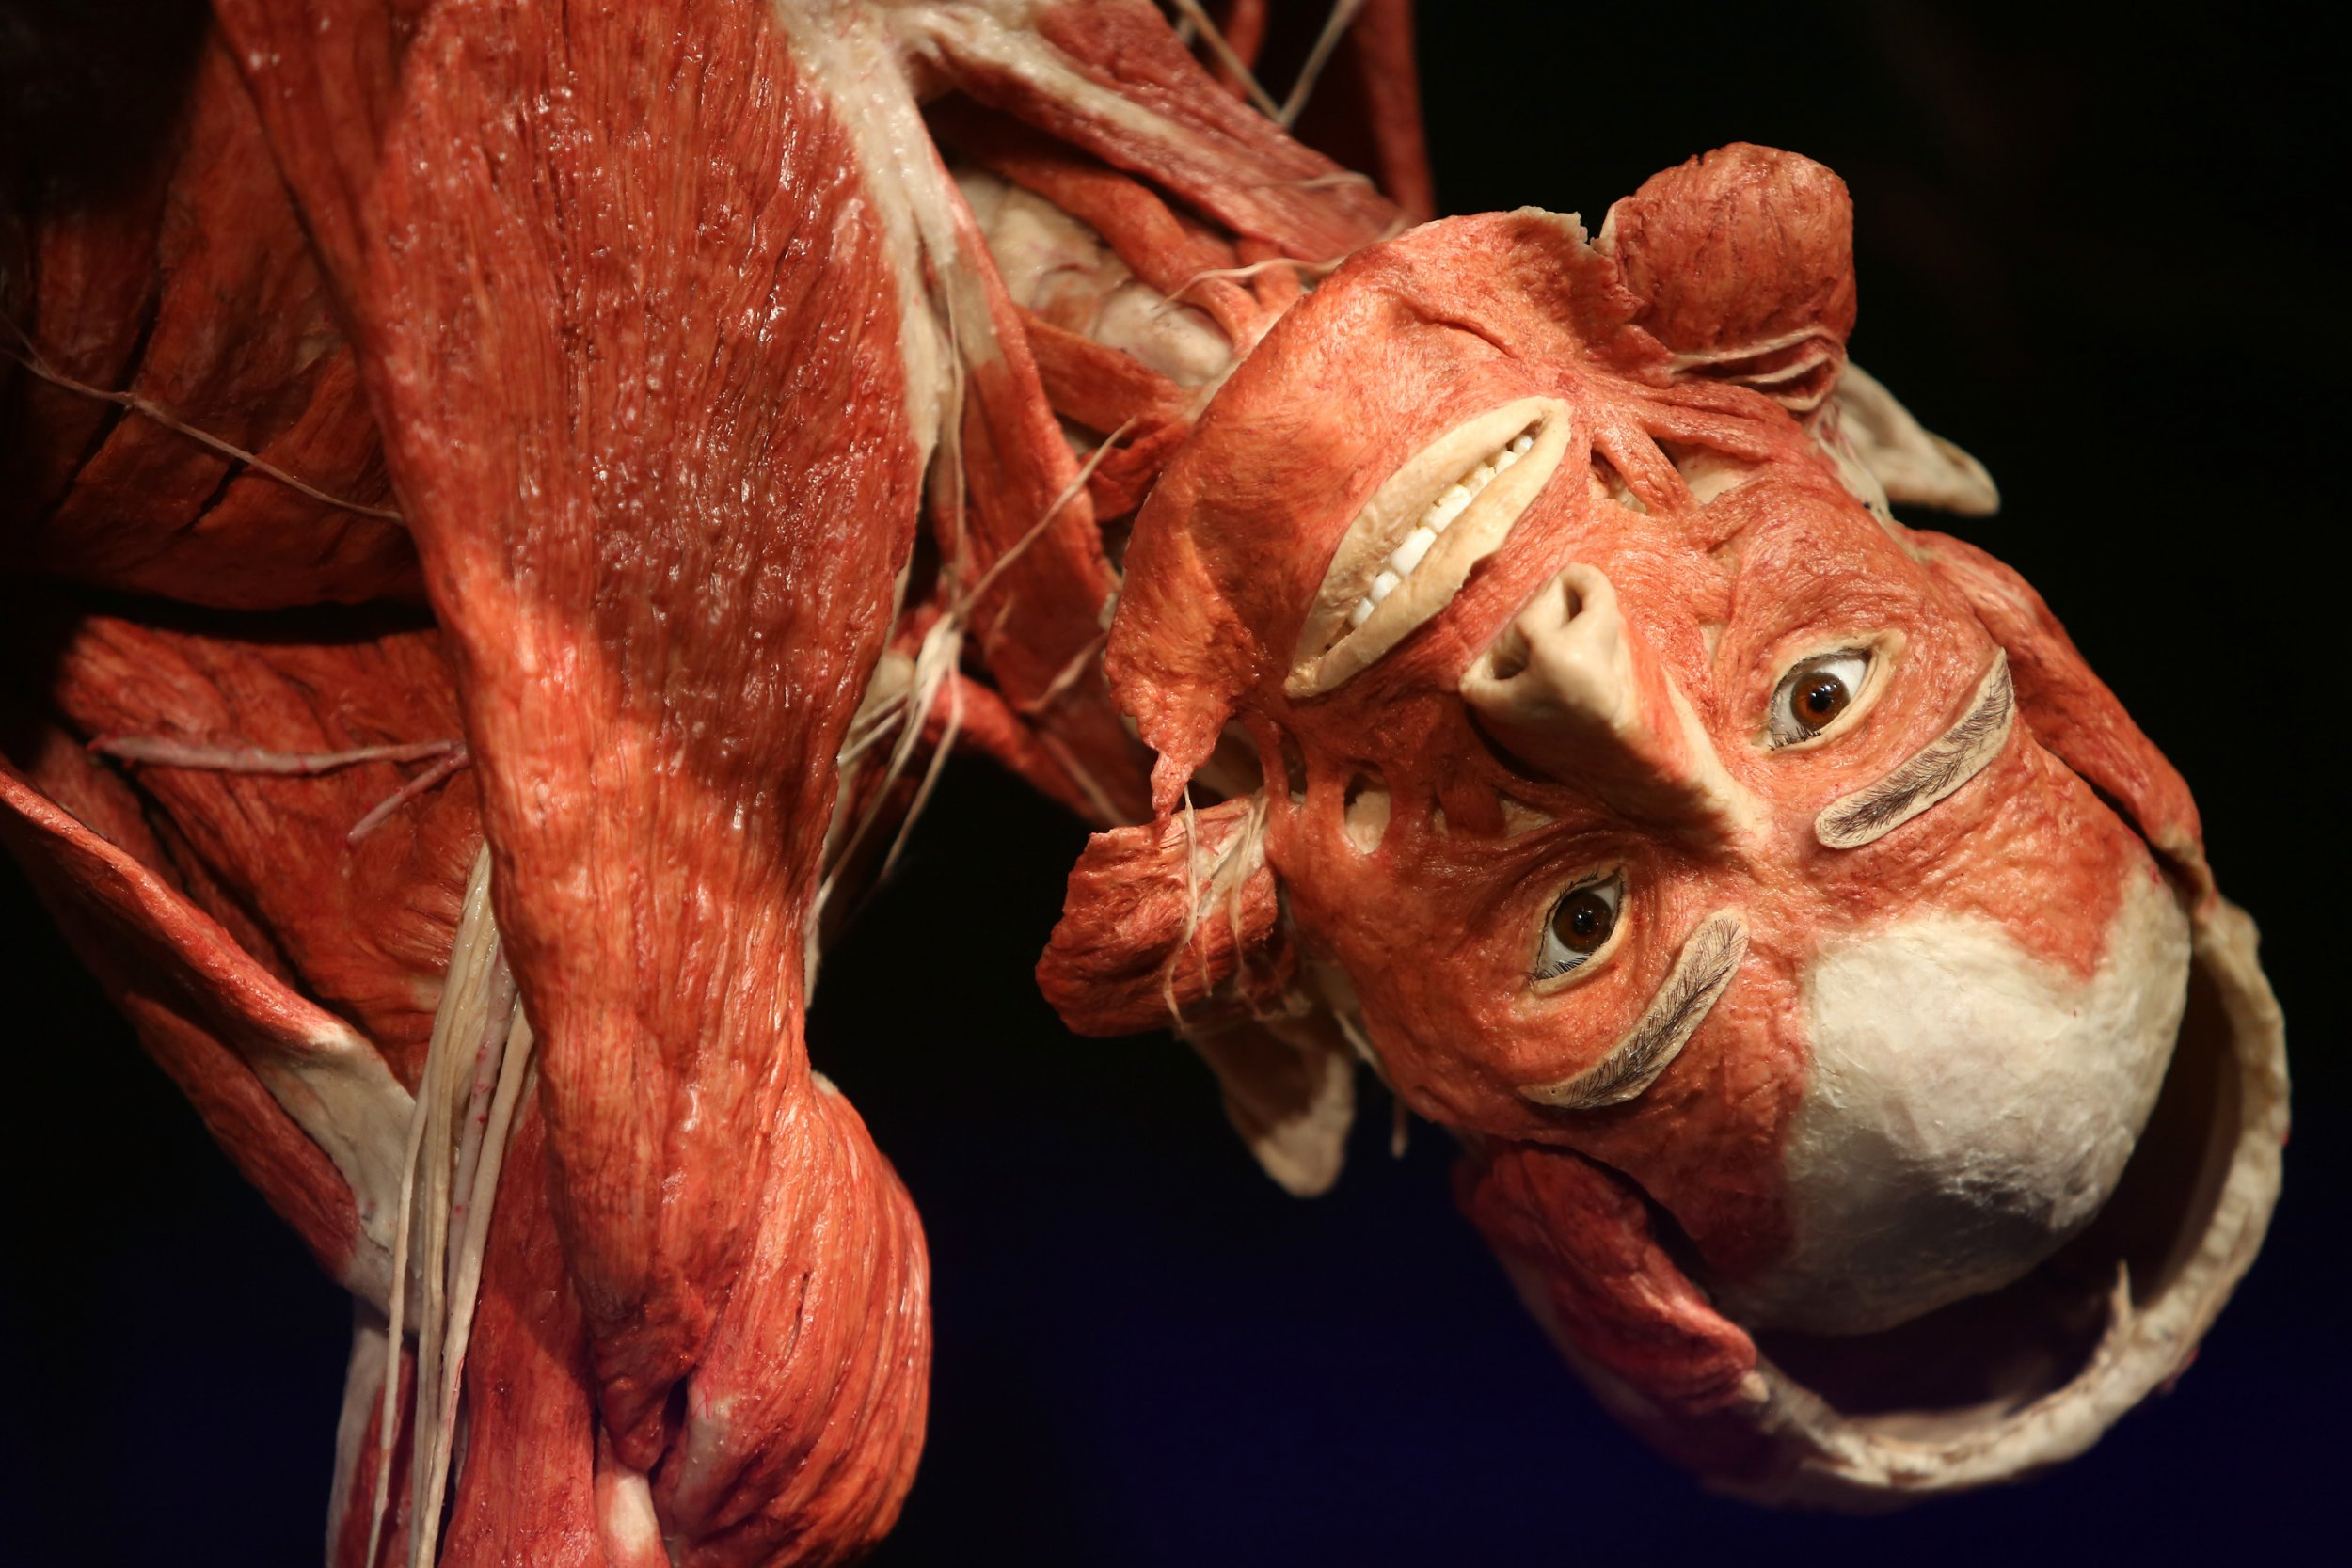 Bodyworlds Exhibit Why Are People Joining A Waiting List To Donate Their Bodies